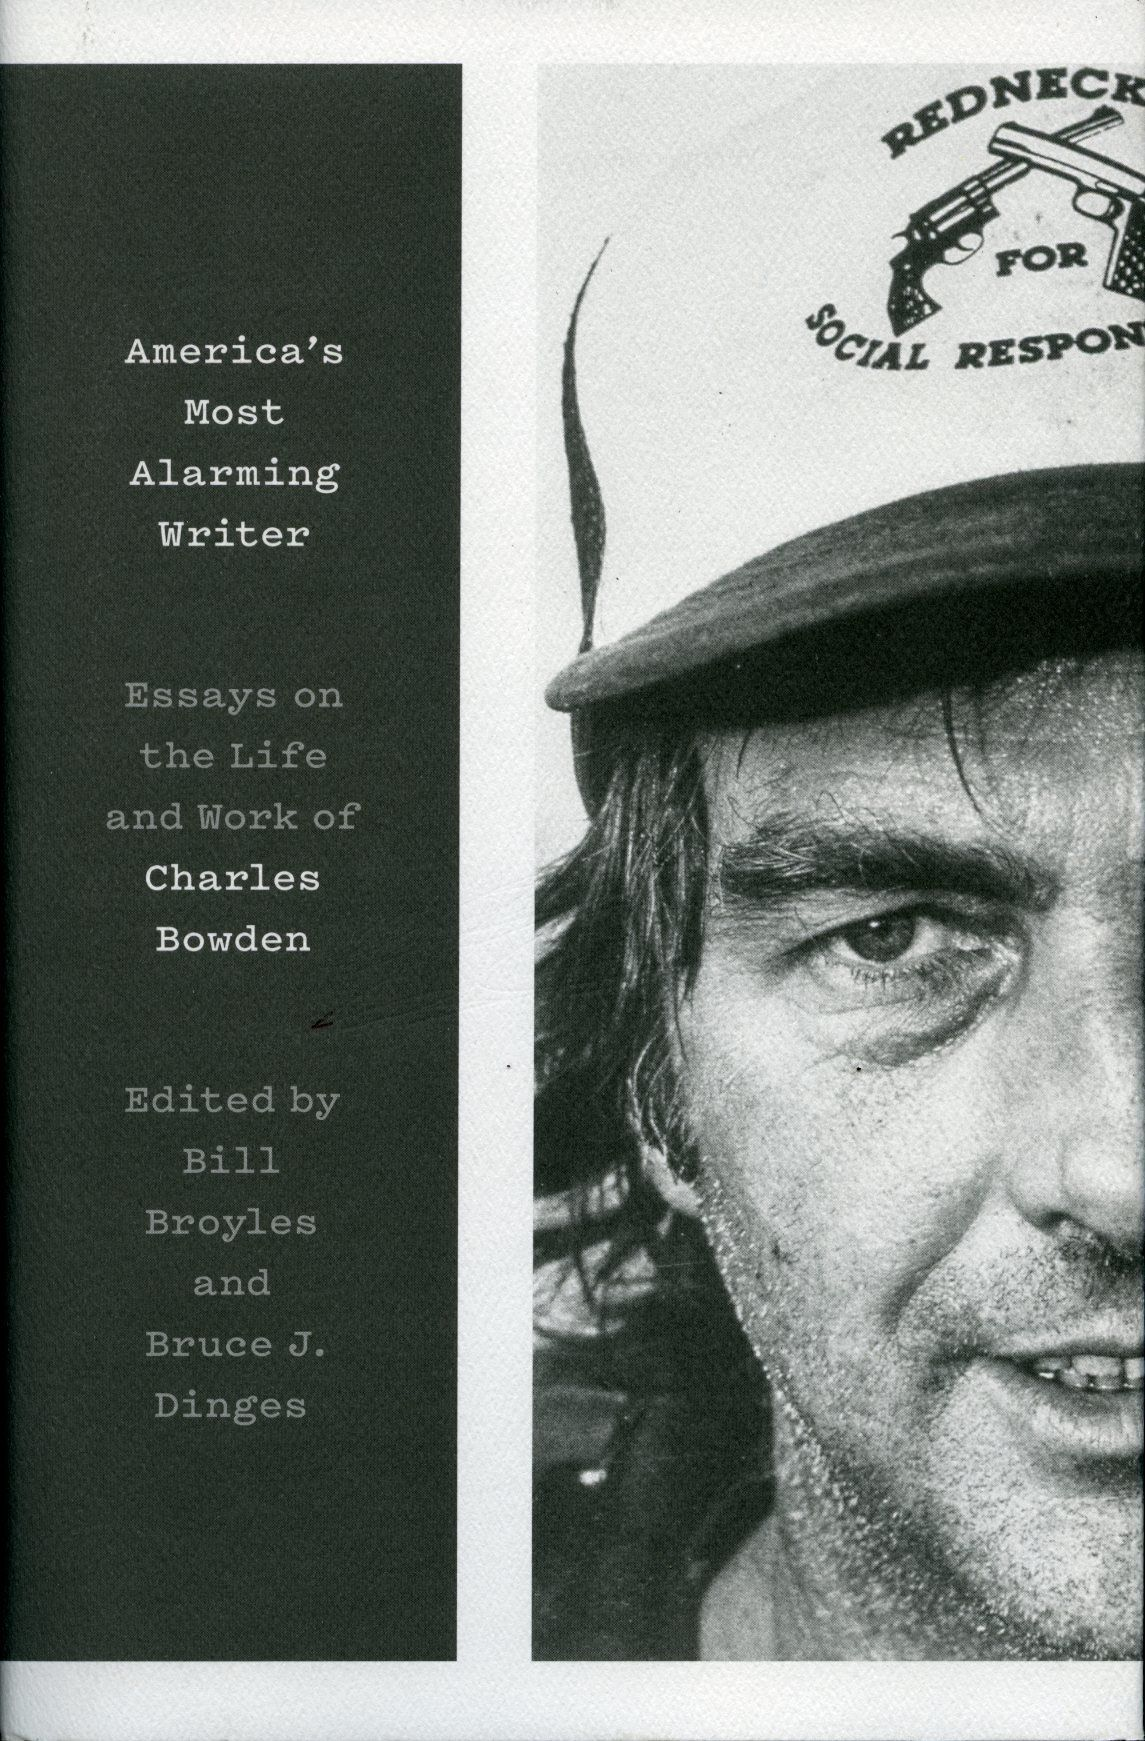 America's Most Alarming Writer – Essays on the Life and Work of Charles Bowden